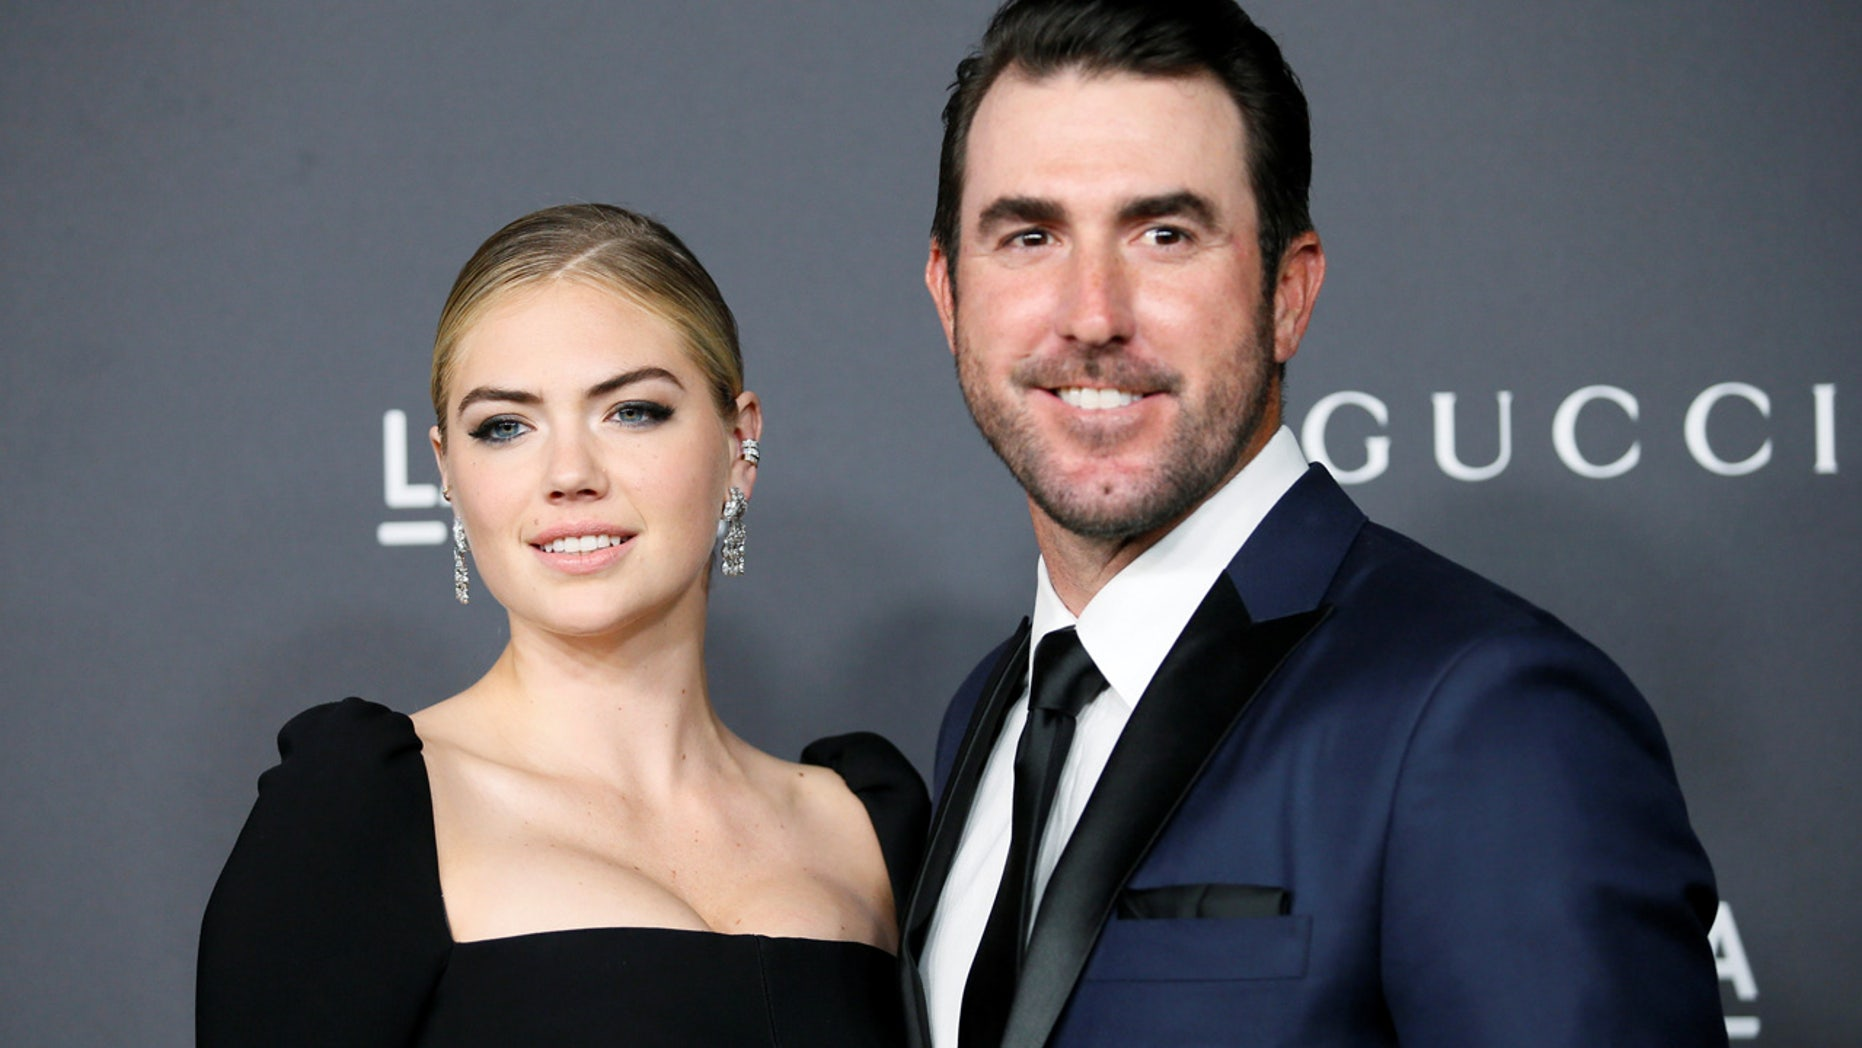 Kate Upton and Justin Verlander pose at the Los Angeles County Museum of Art (LACMA) Art+Film Gala, Oct. 29, 2016.